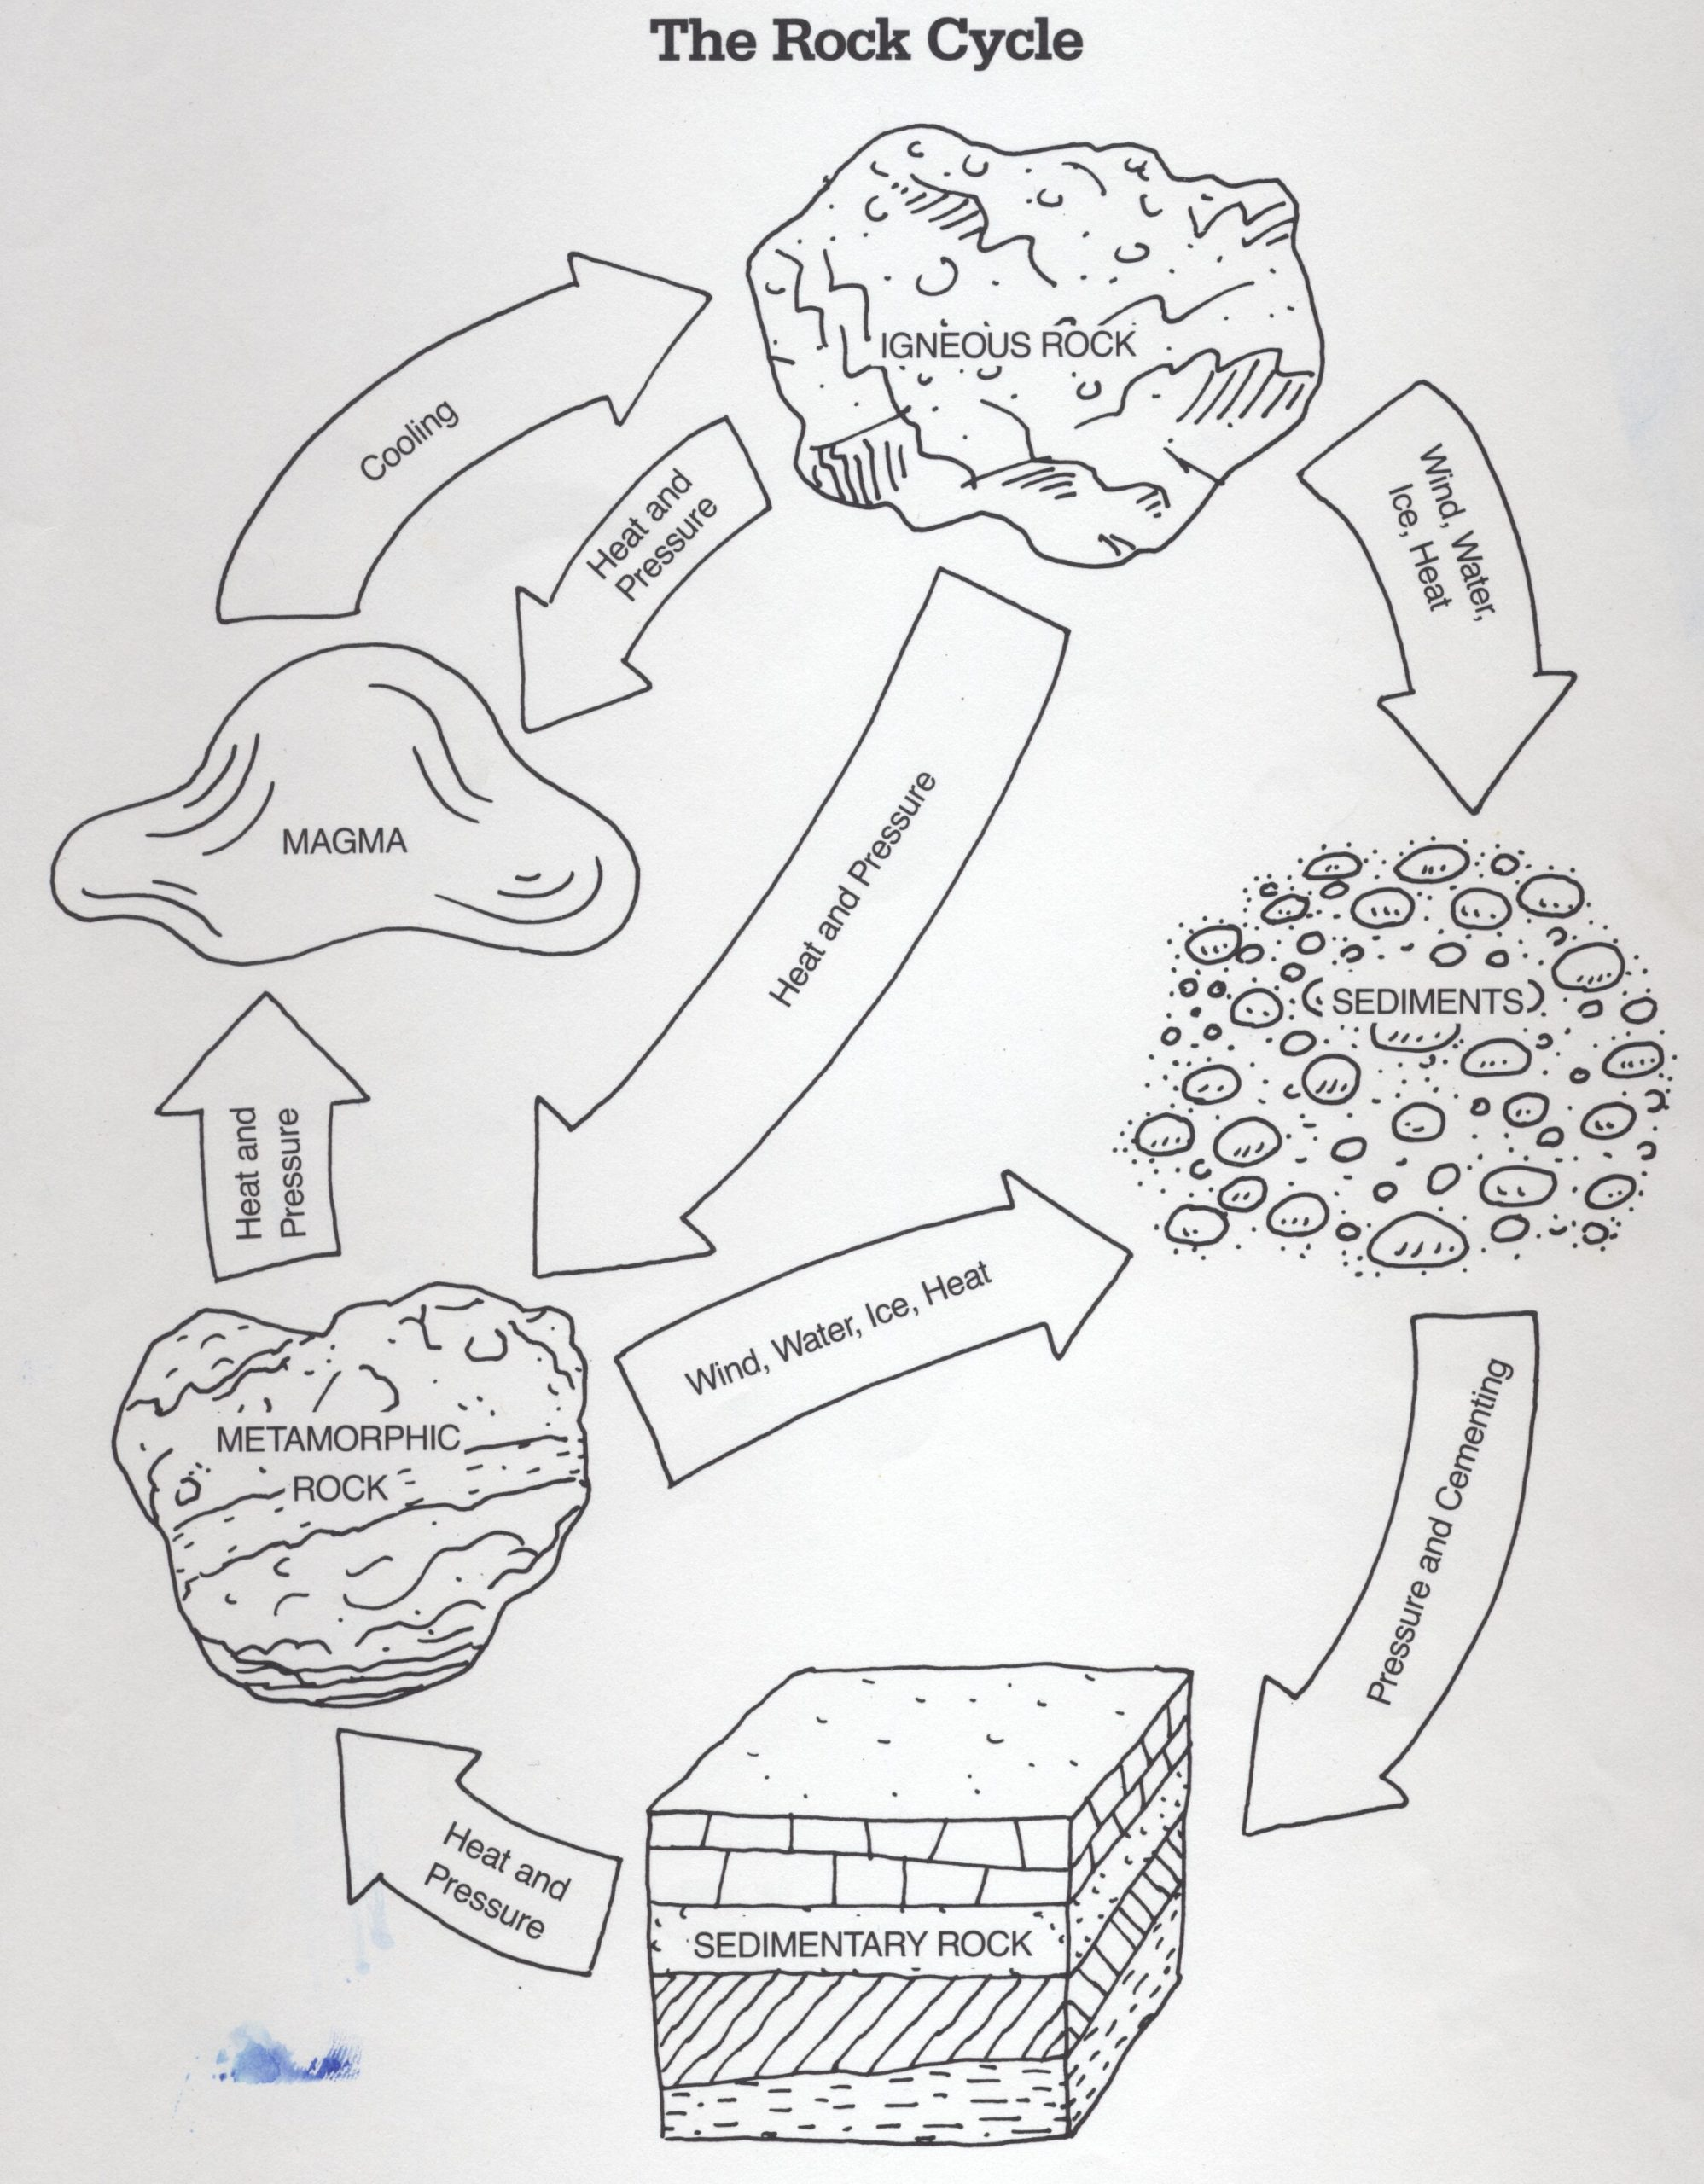 Rock Cycle Worksheet High School Diagram the Rock Cycle Worksheet